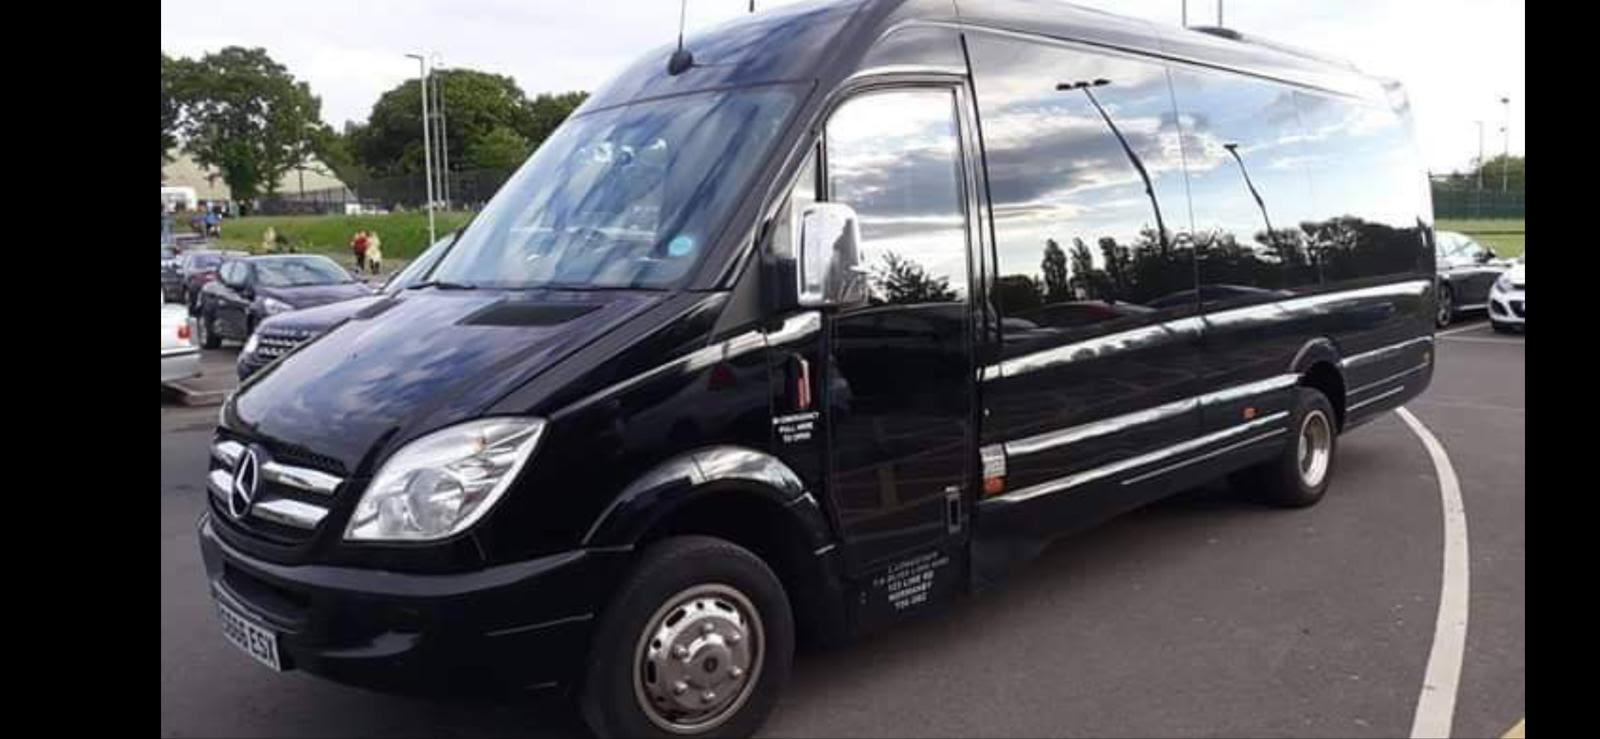 party bus hire in Yorkshire